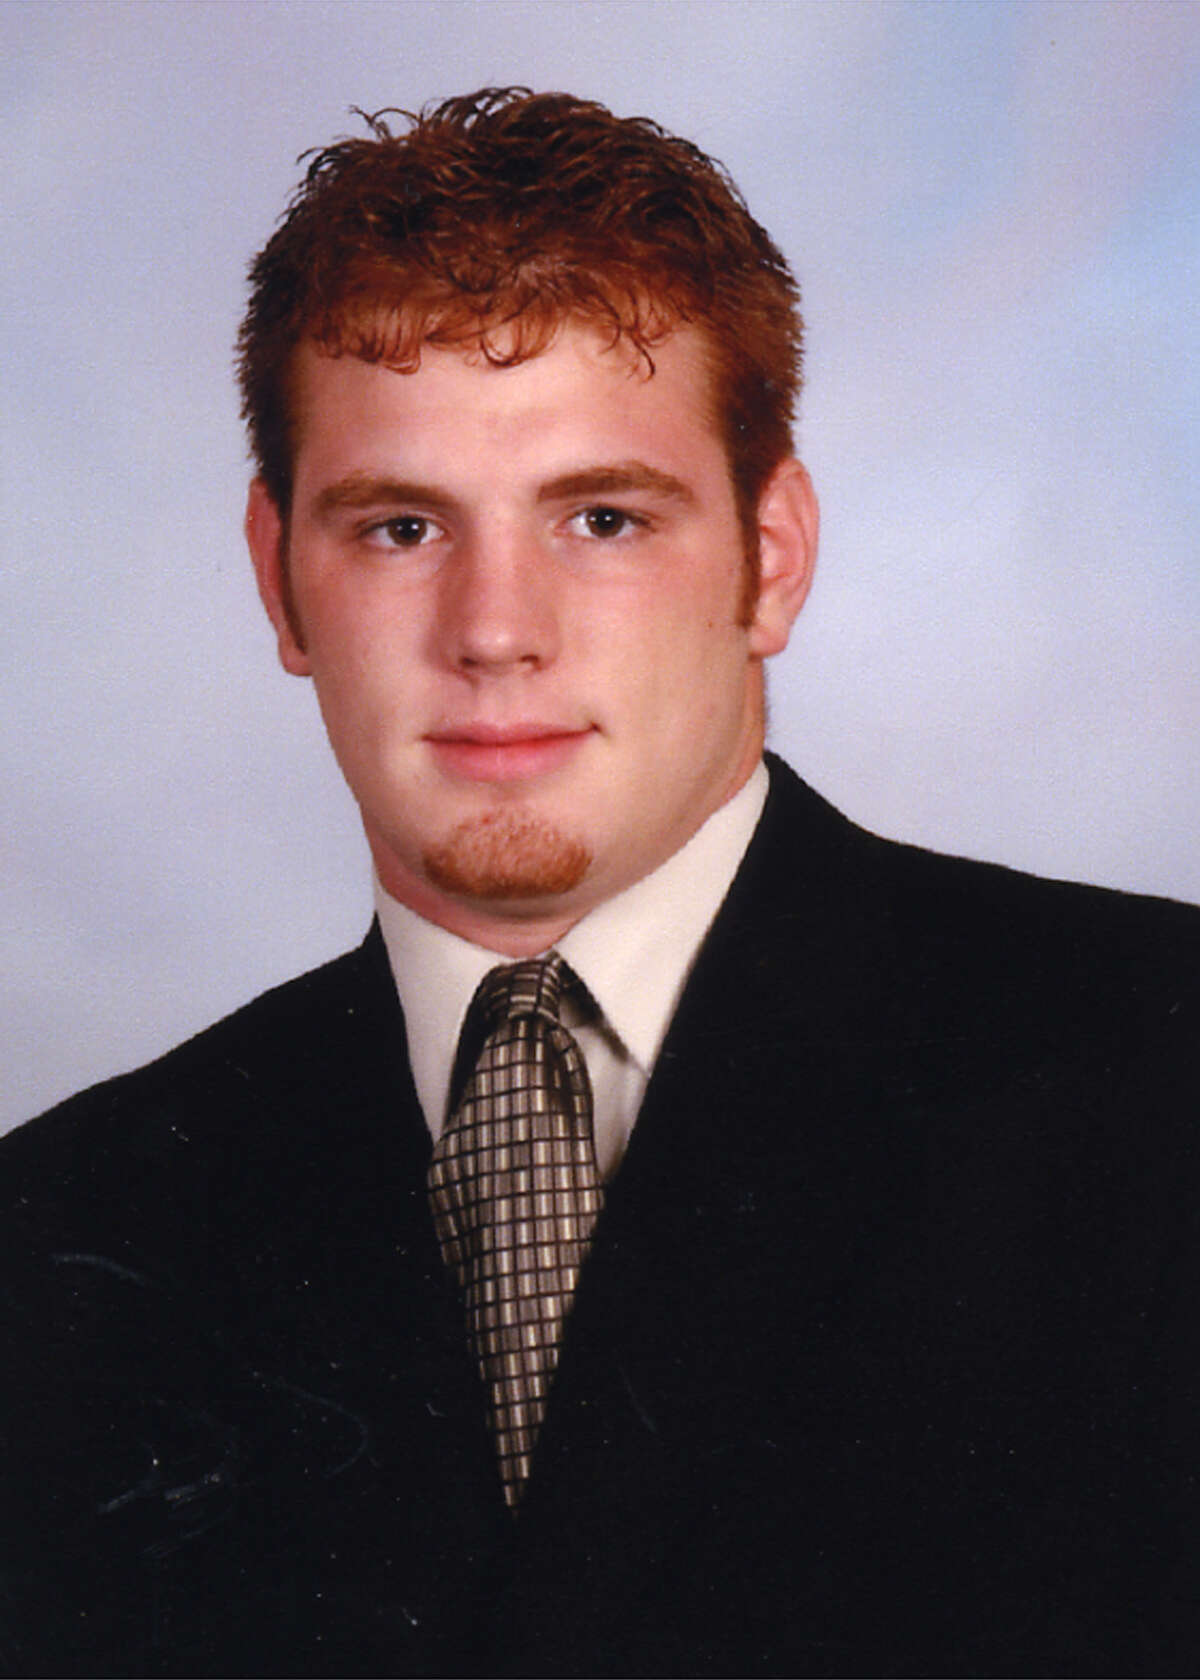 Undated family photo of Craig Frear. Frear disappeared from his Scotia neighborhood on June 27, 2004.